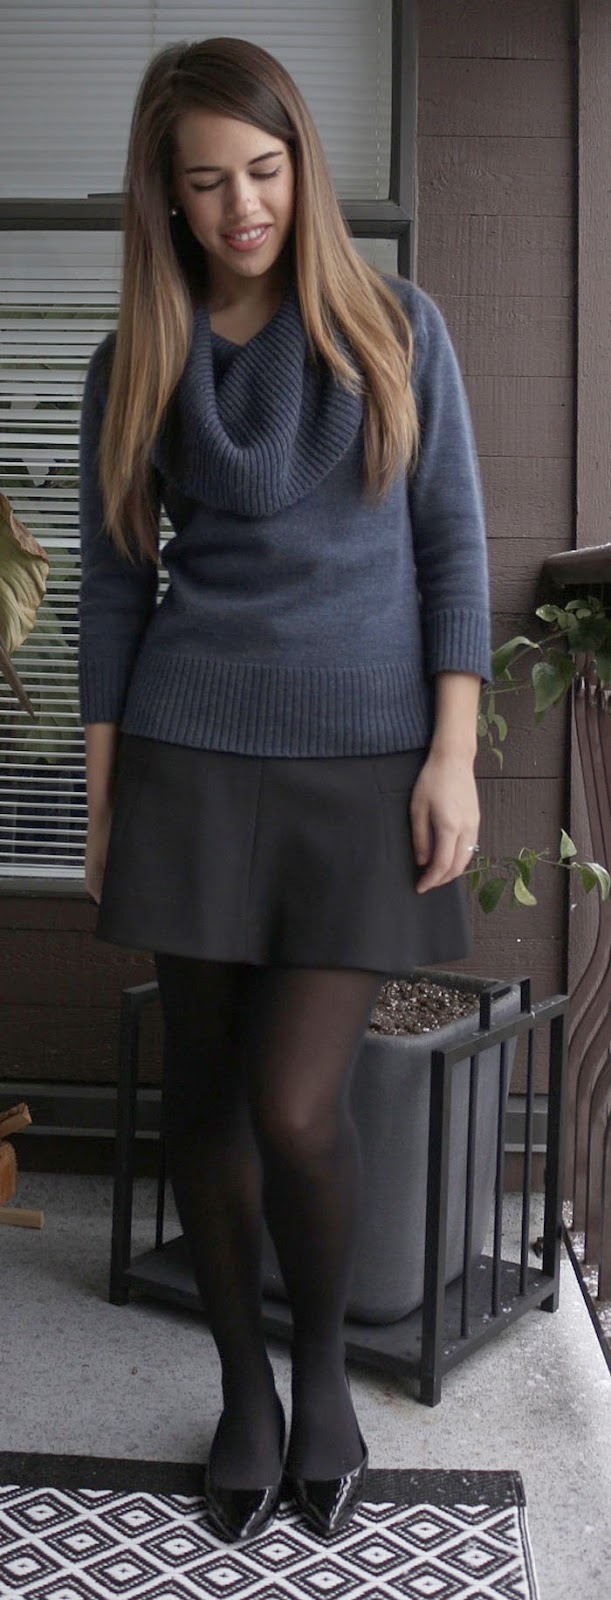 Jules in Flats - Joe Fresh Sweater, J.Crew Skirt